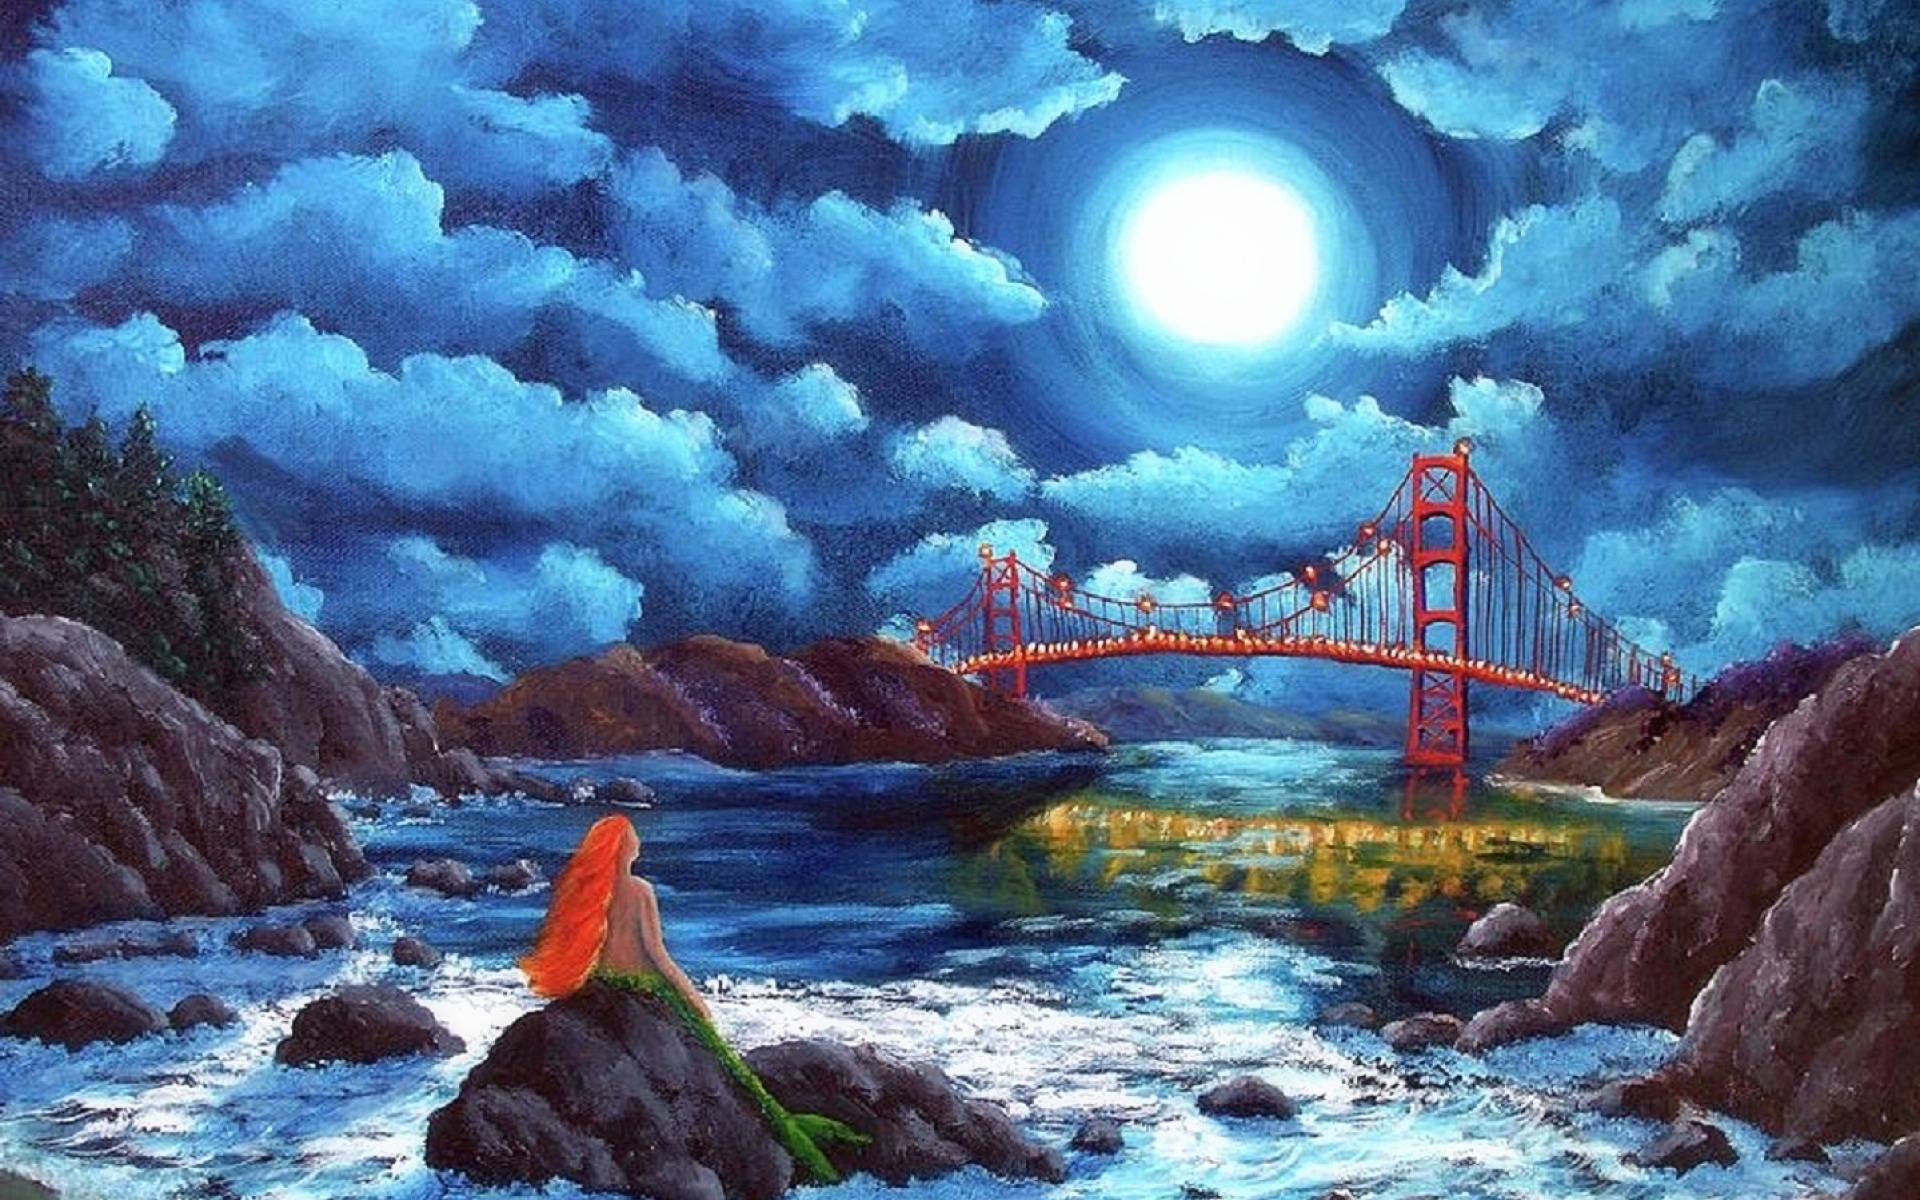 Fall Scenes For Ipad Wallpaper Golden Gate Bridge Mermaid Wallpapers Golden Gate Bridge